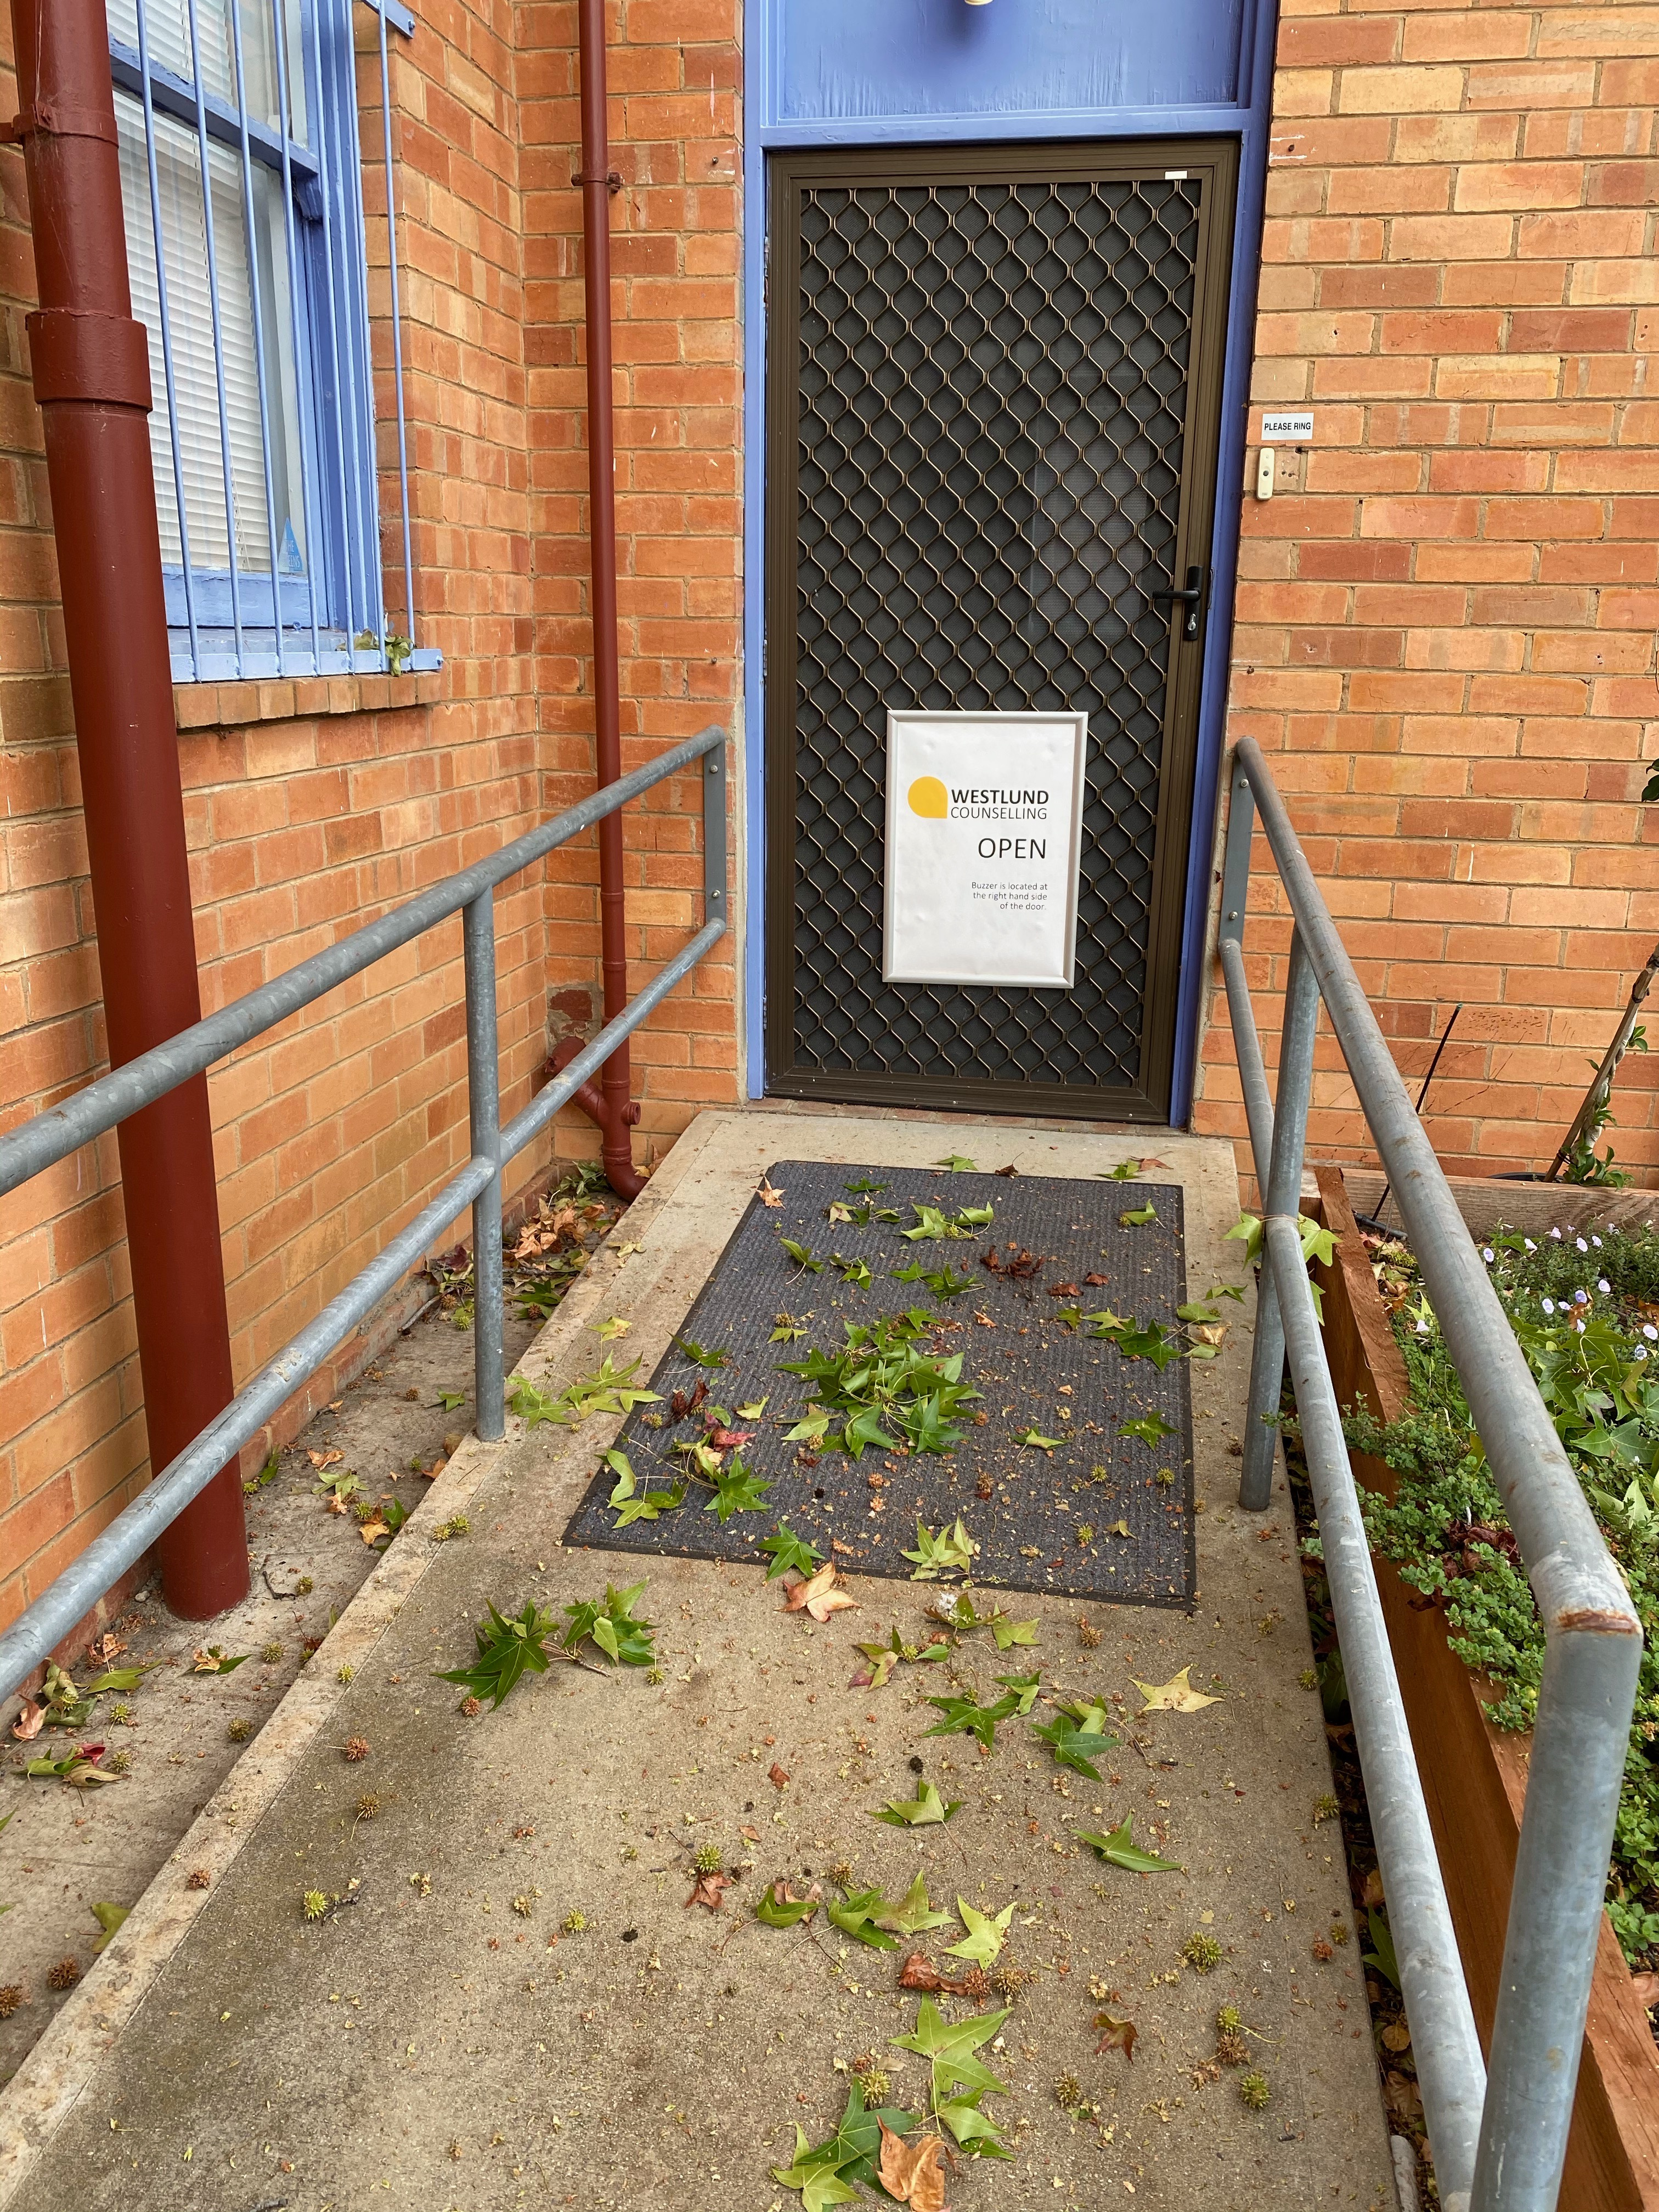 A path with side rails leading up to the back entrance of the Meridian building